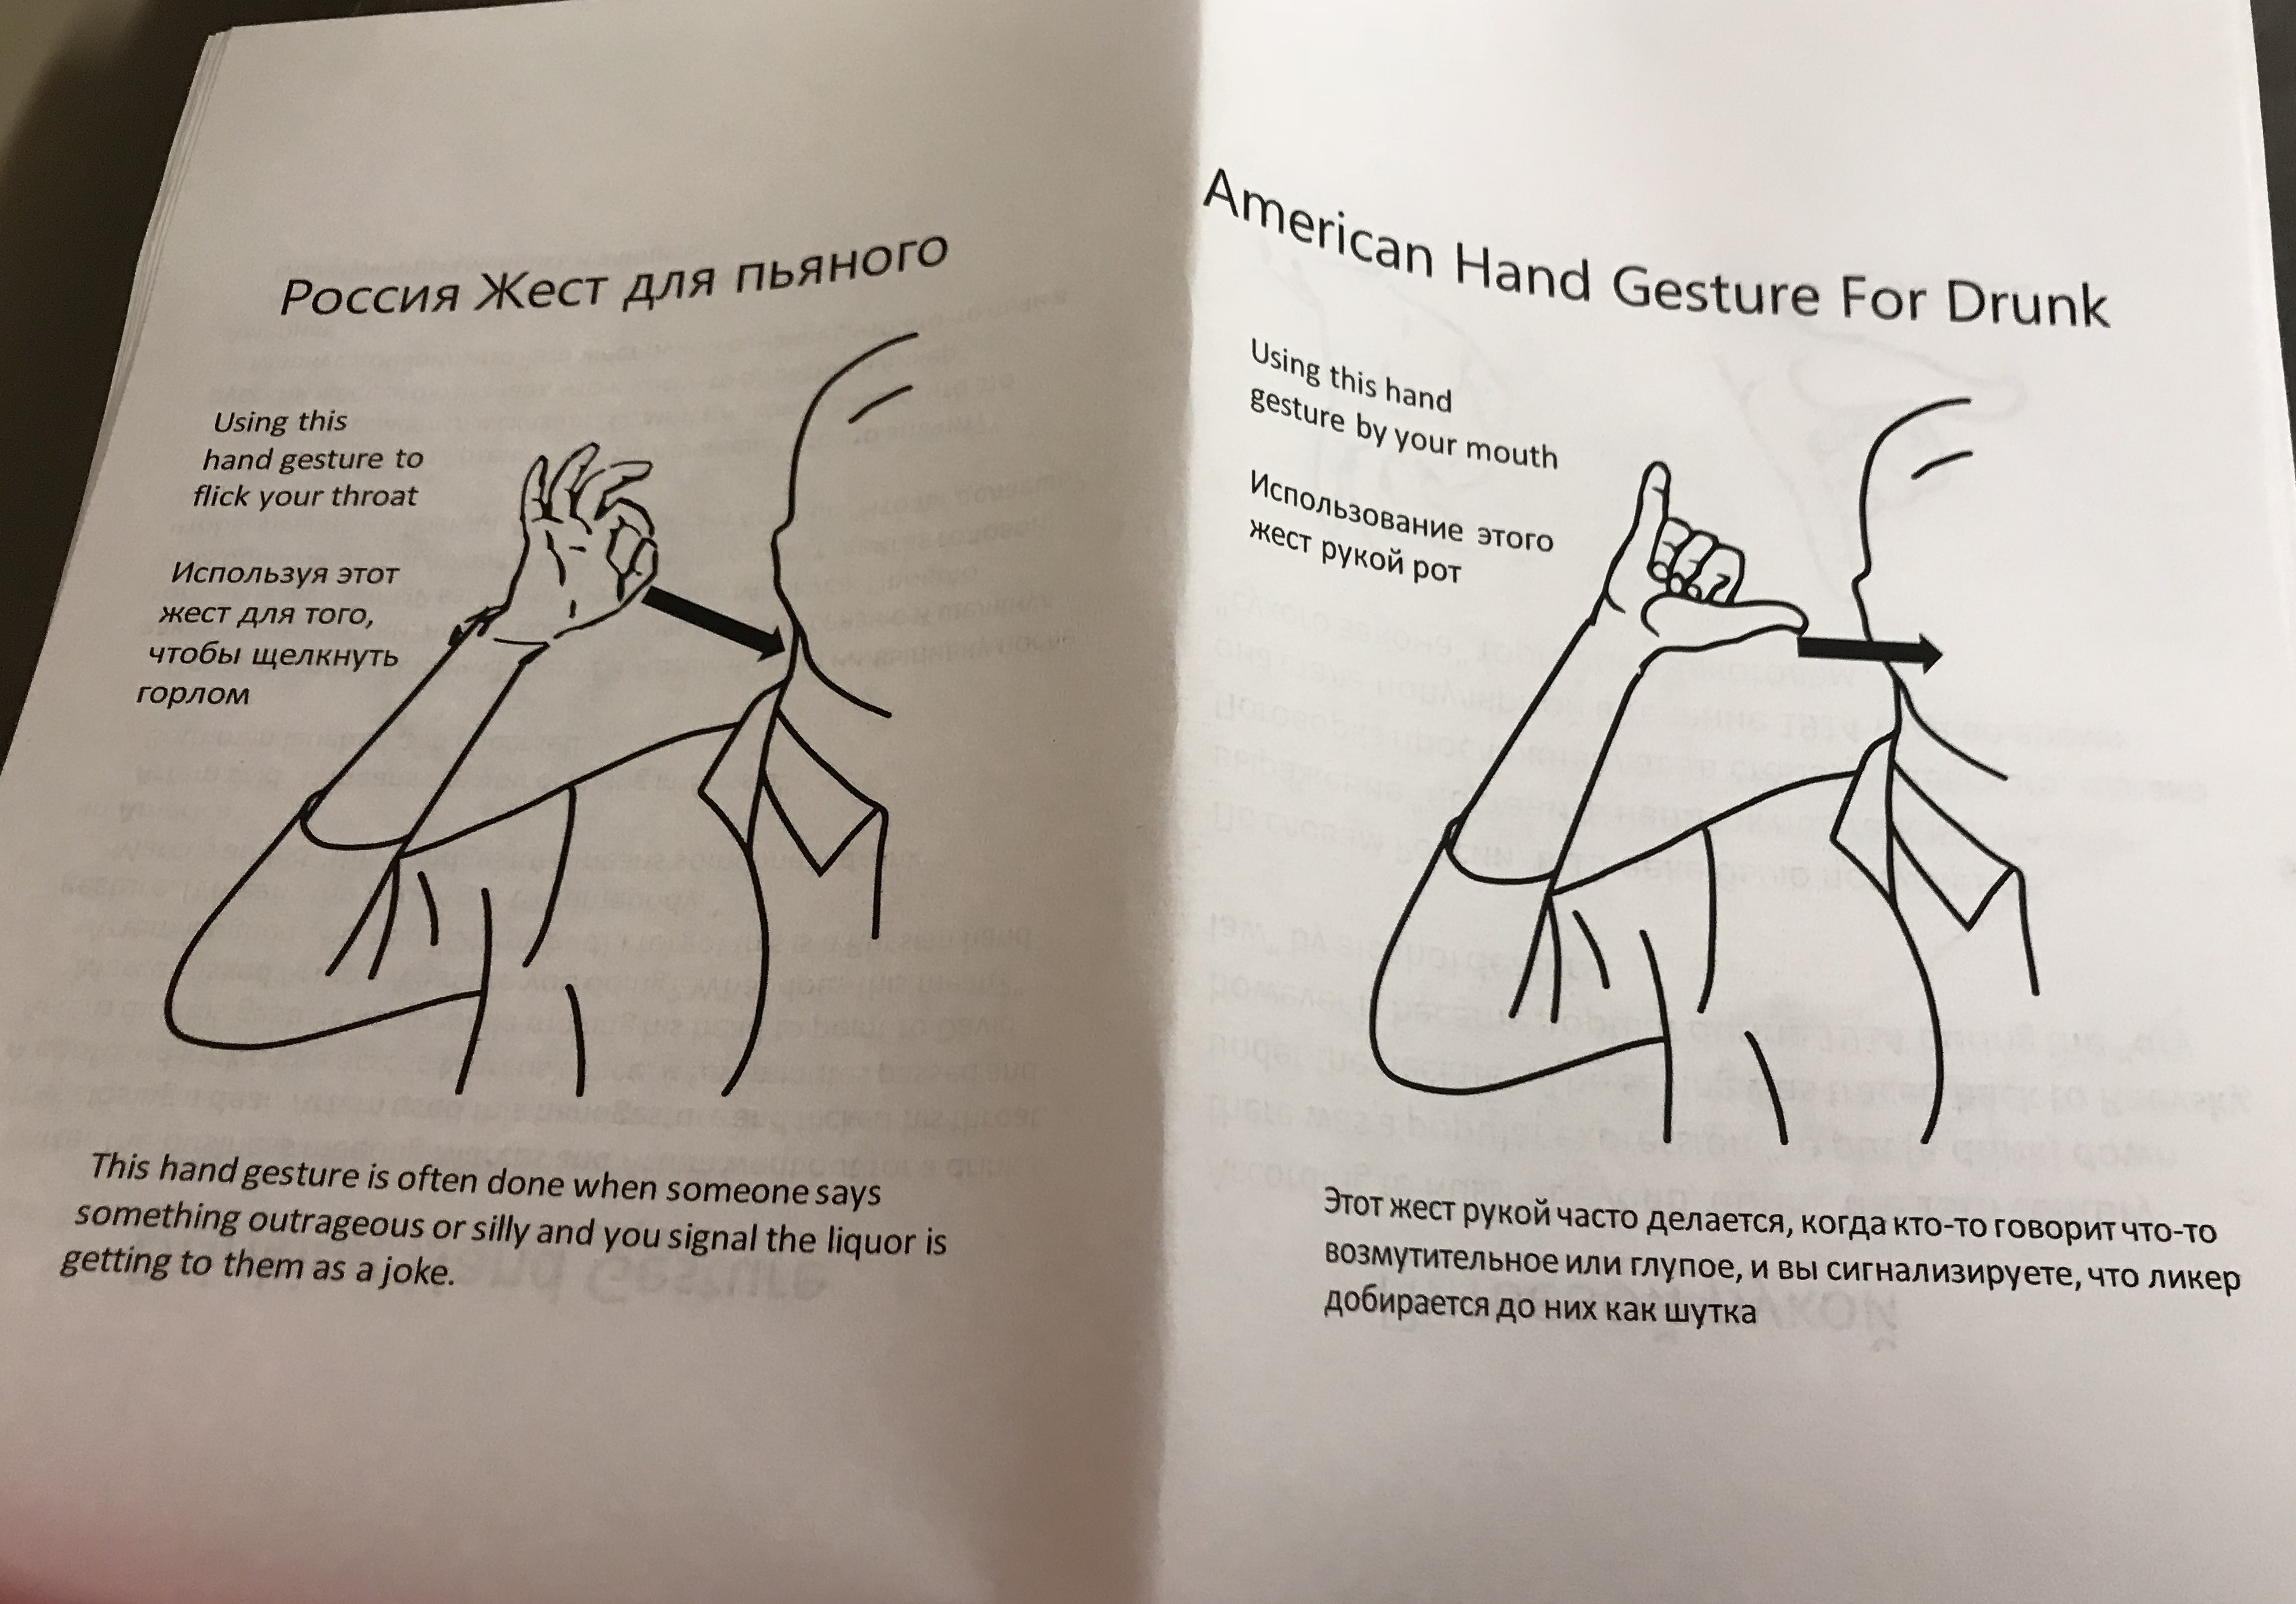 20. Russian hand gesture for drinking 21. American hand gesture for drinking